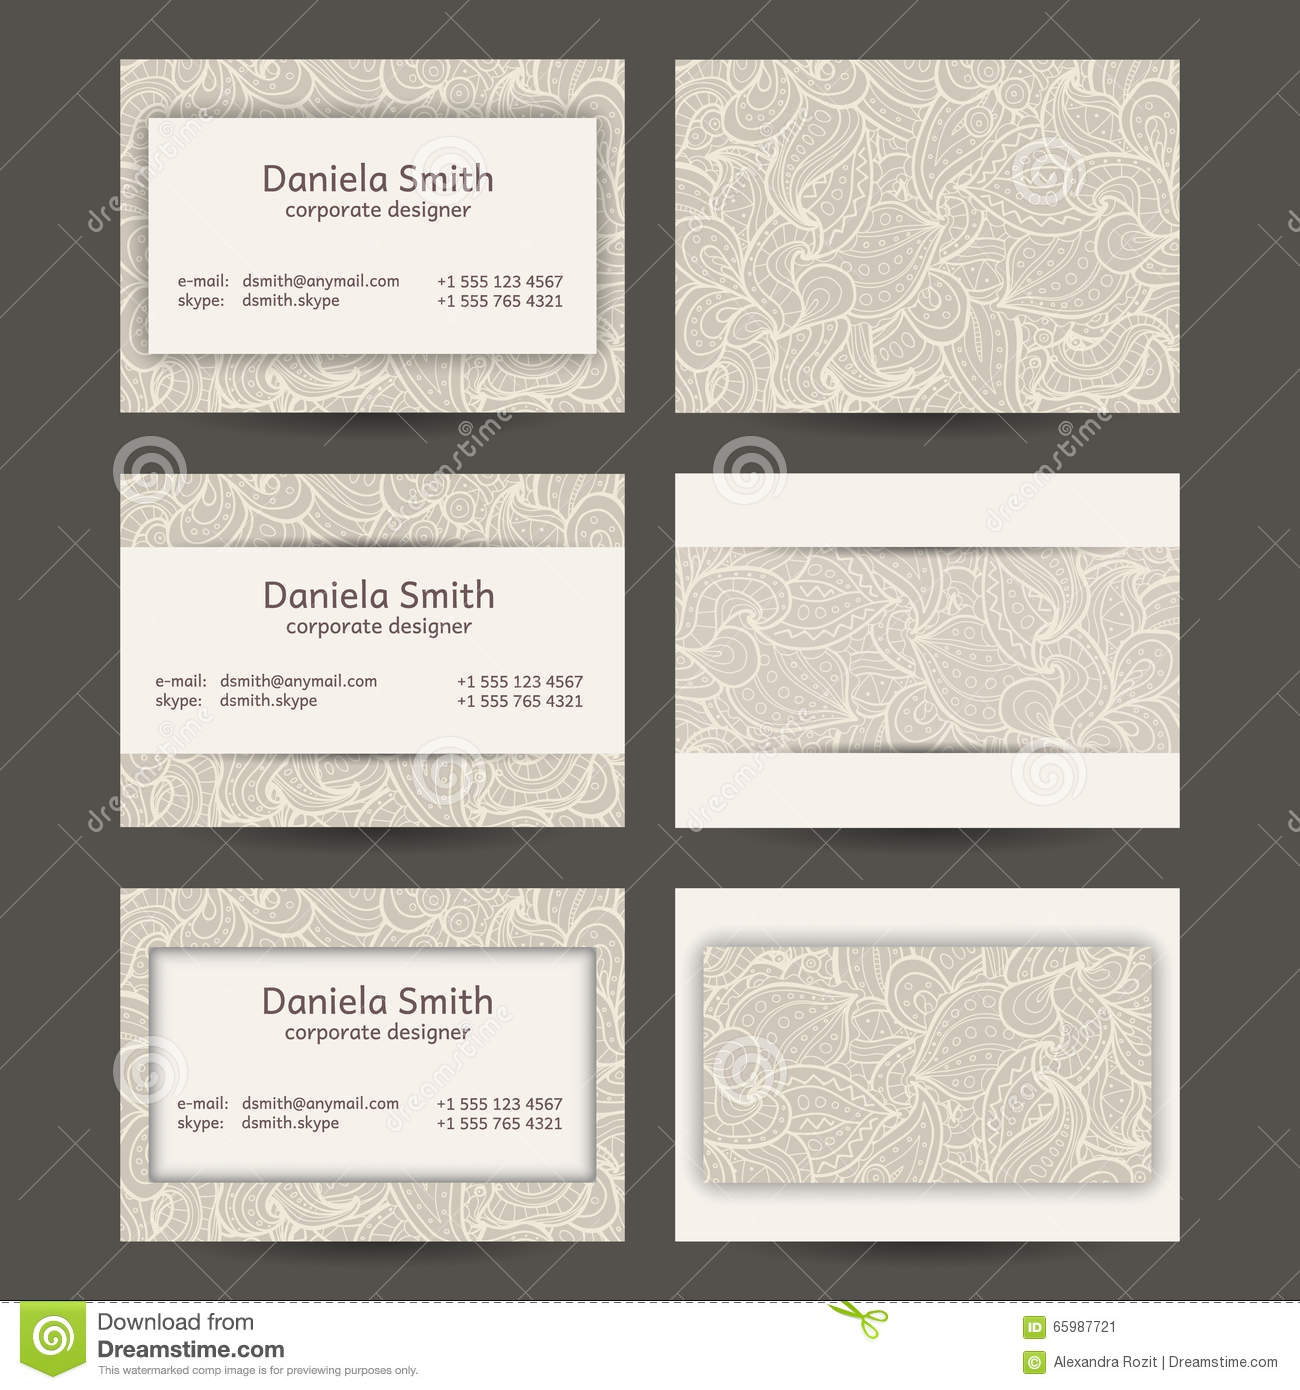 Vintage business cards templates stock vector illustration of vintage business cards templates royalty free vector reheart Gallery